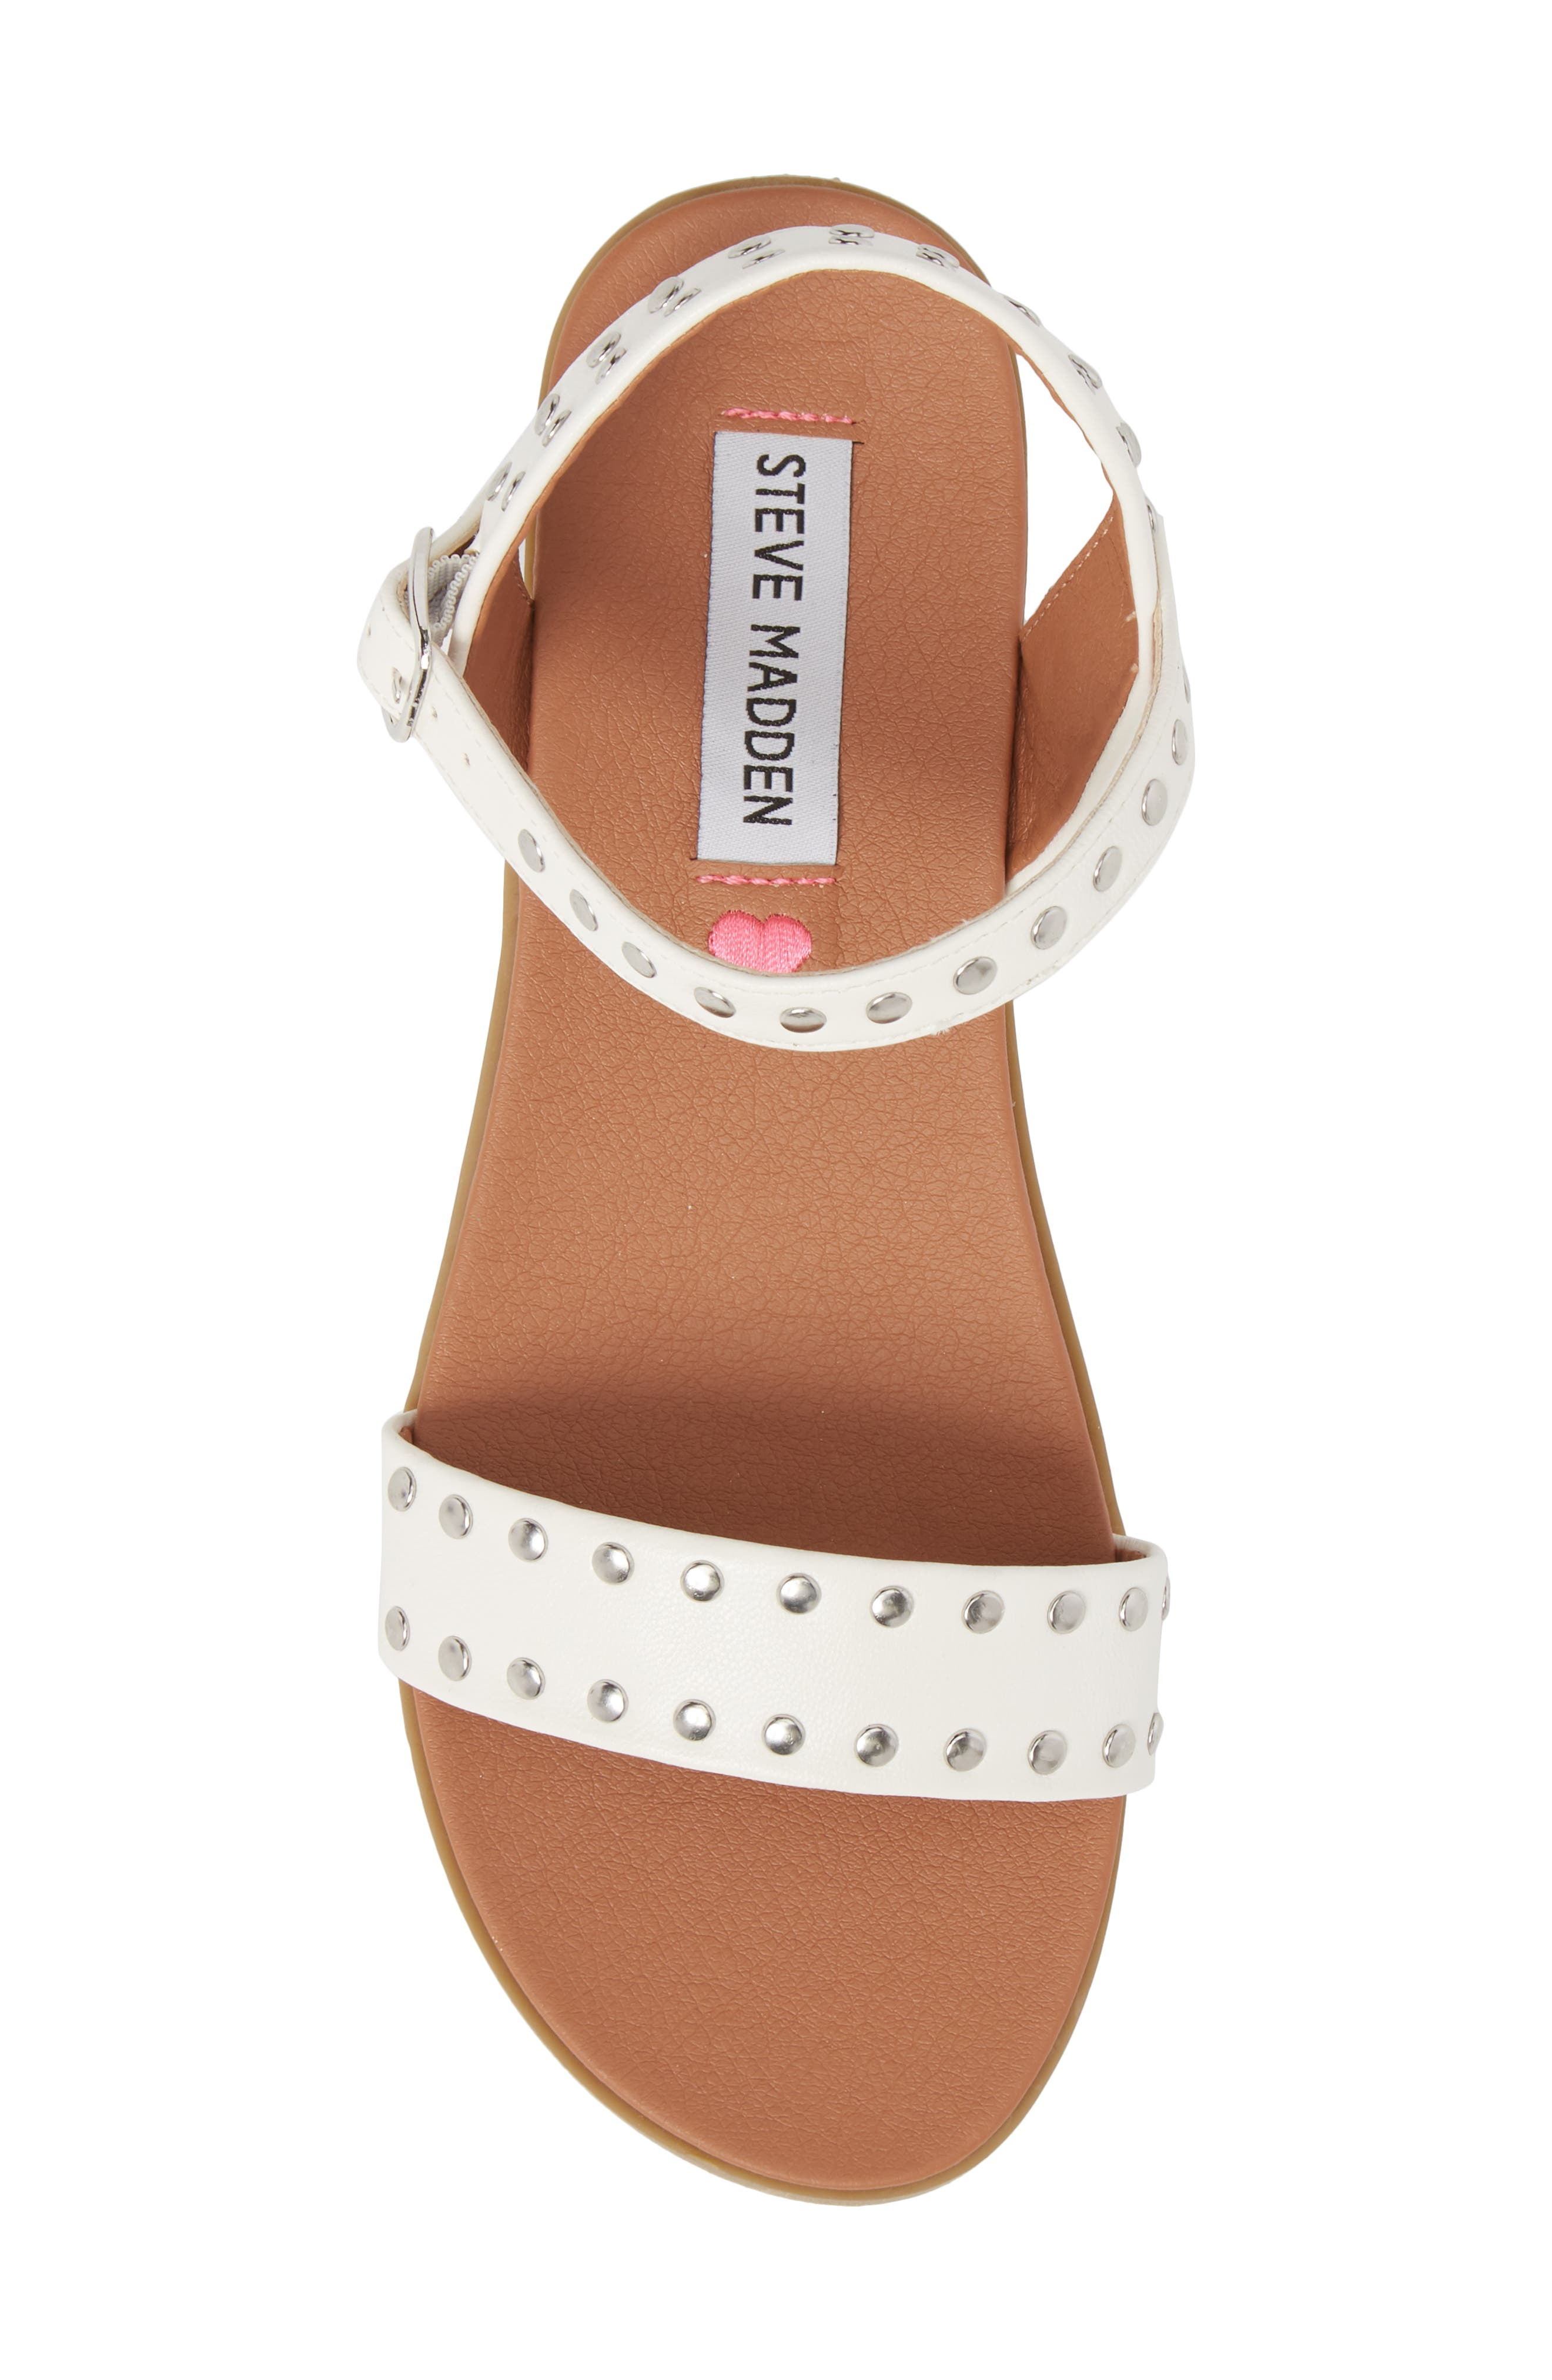 JDONDI Studded Sandal,                             Alternate thumbnail 5, color,                             WHITE